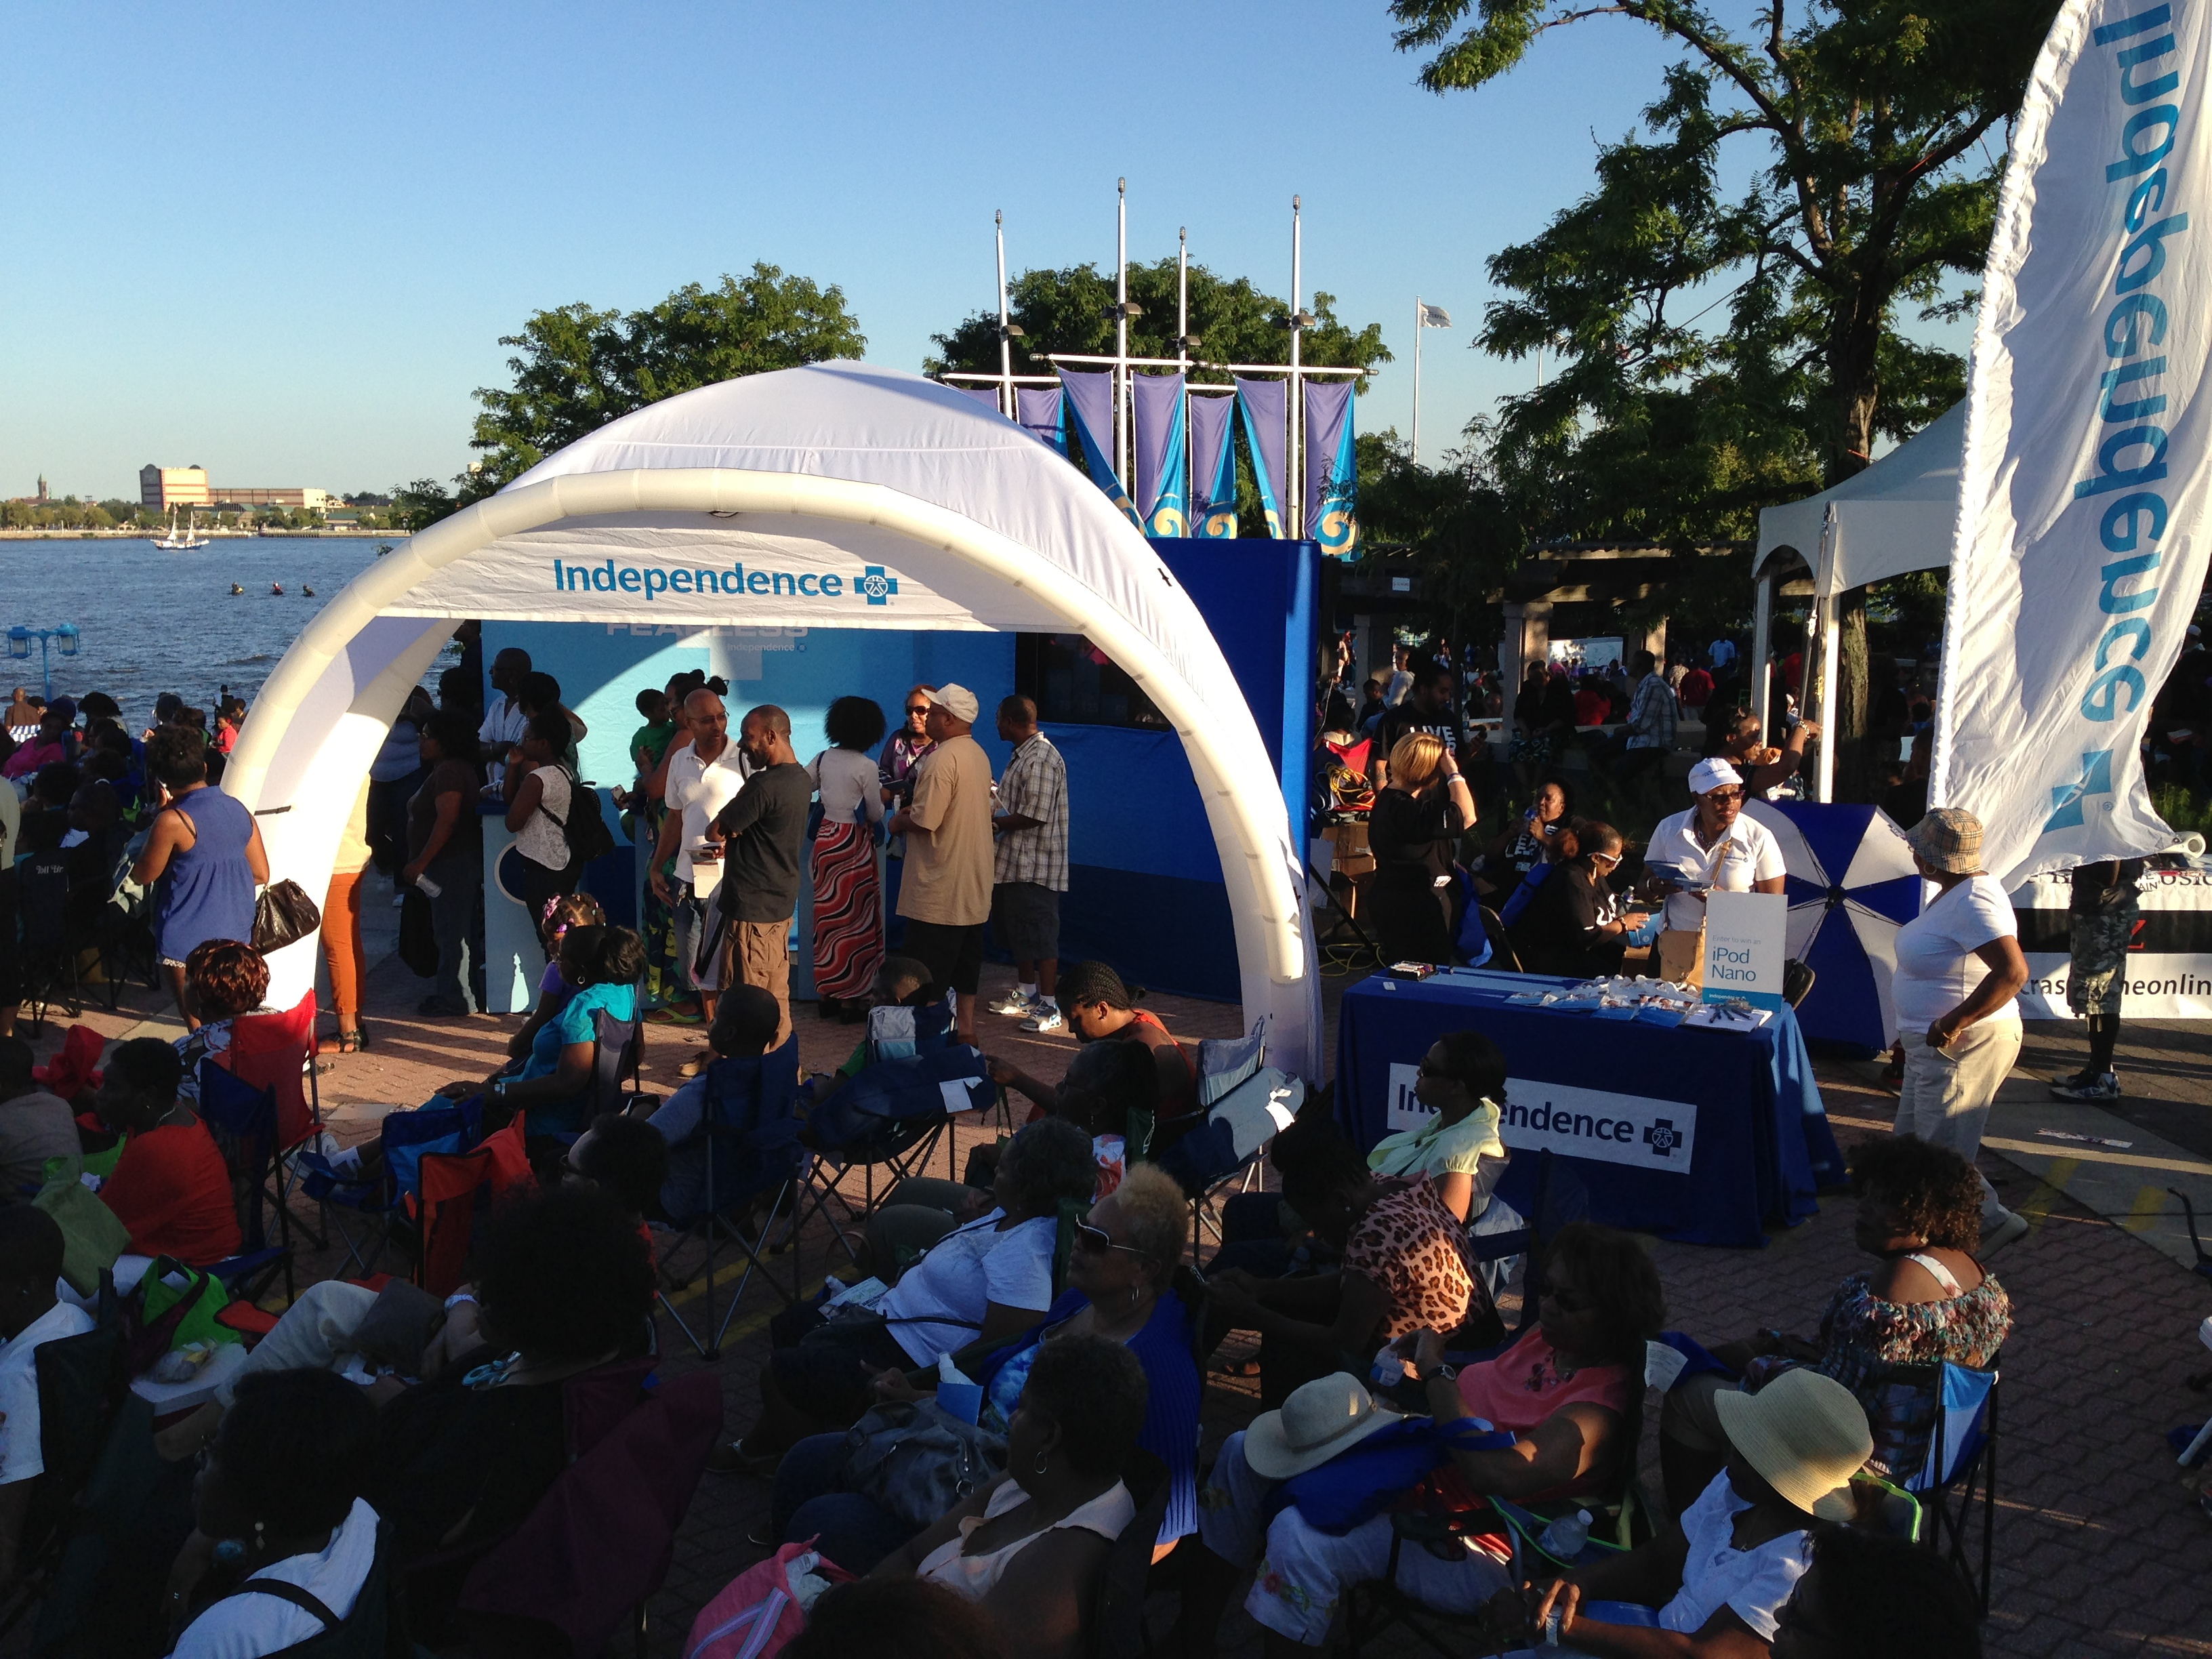 Independence Blue Cross at Penn's Landing